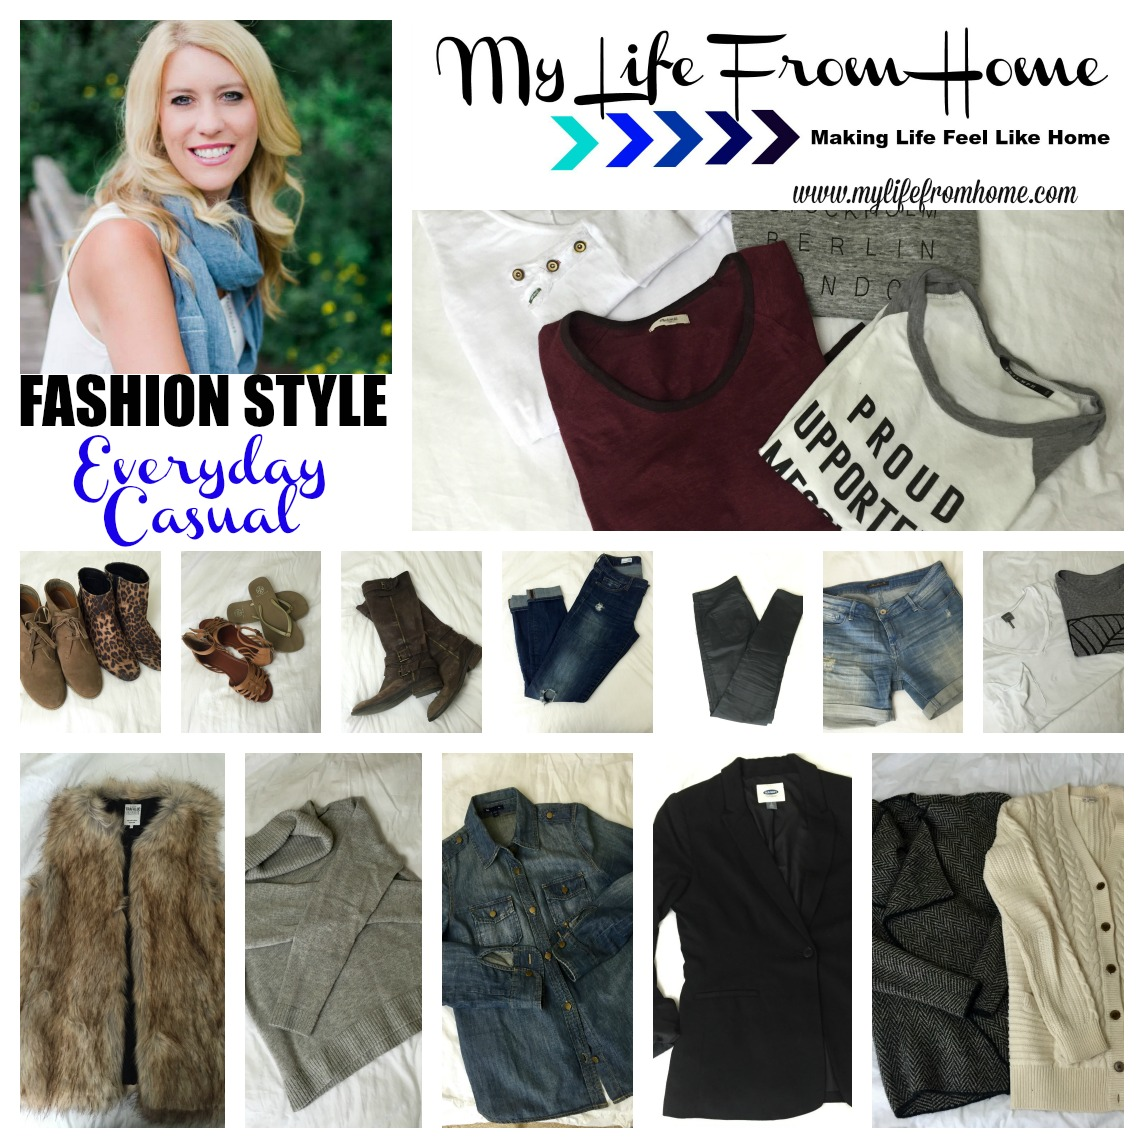 Fashion Style Everyday Casual by www.mylifefromhome.com